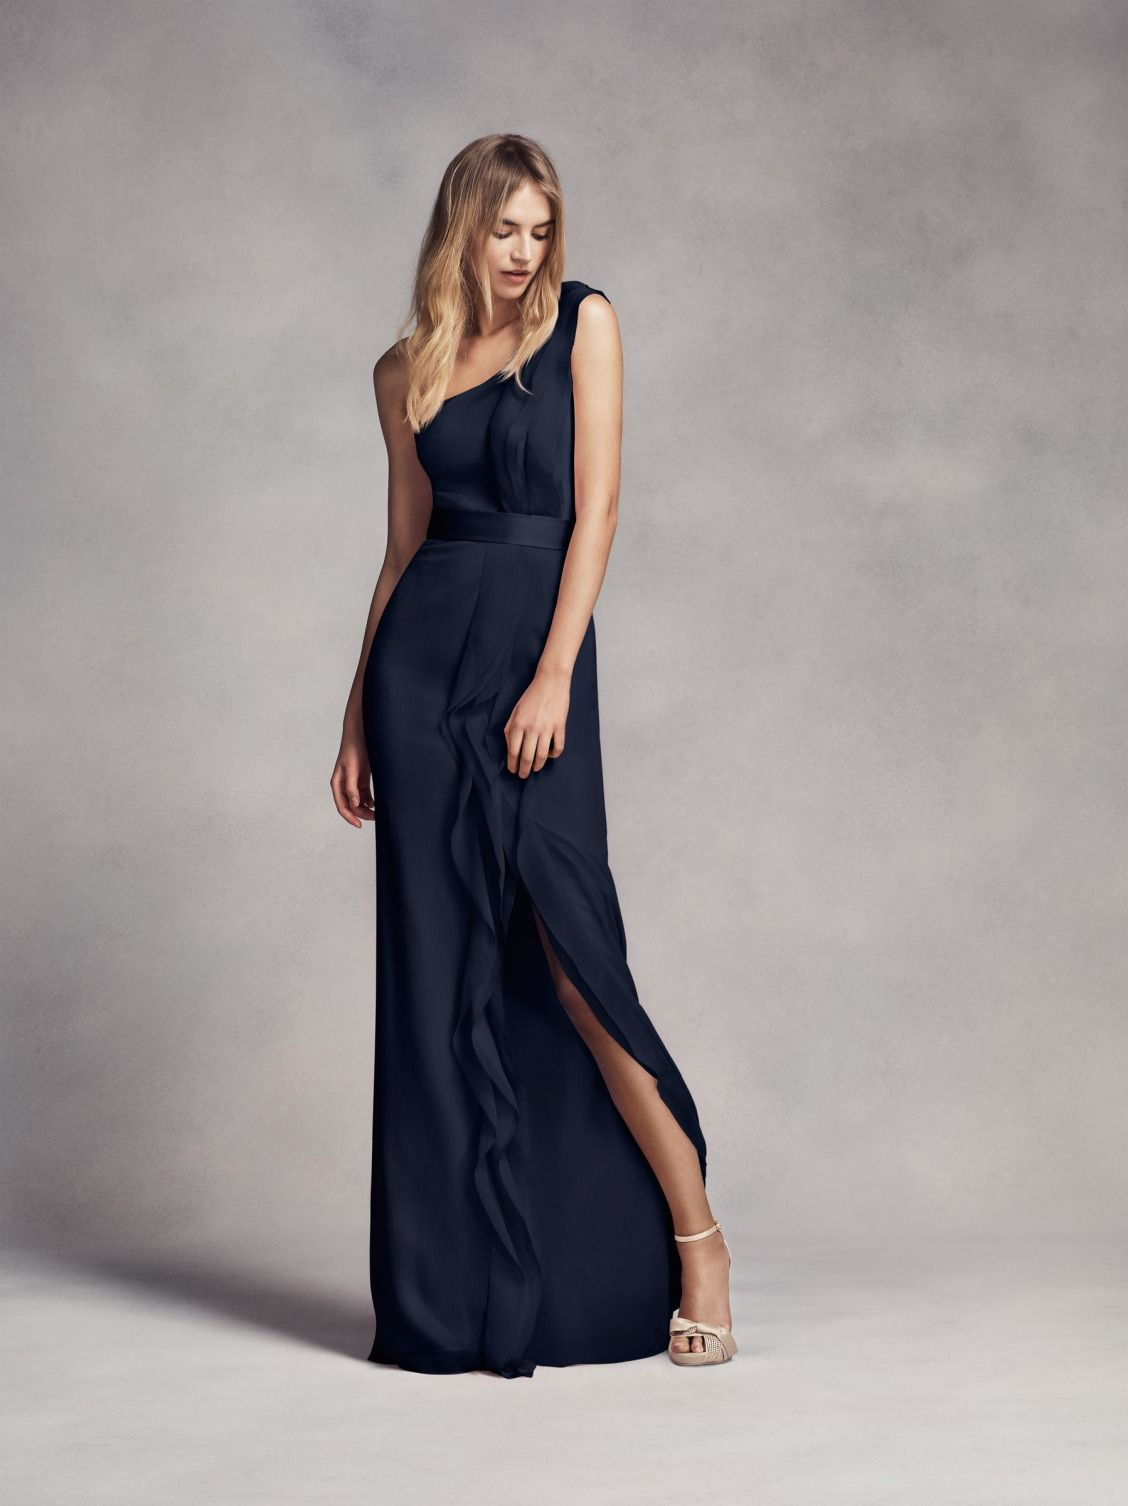 A crowd favorite, this one shoulder ruffle detail bridesmaid dress ...